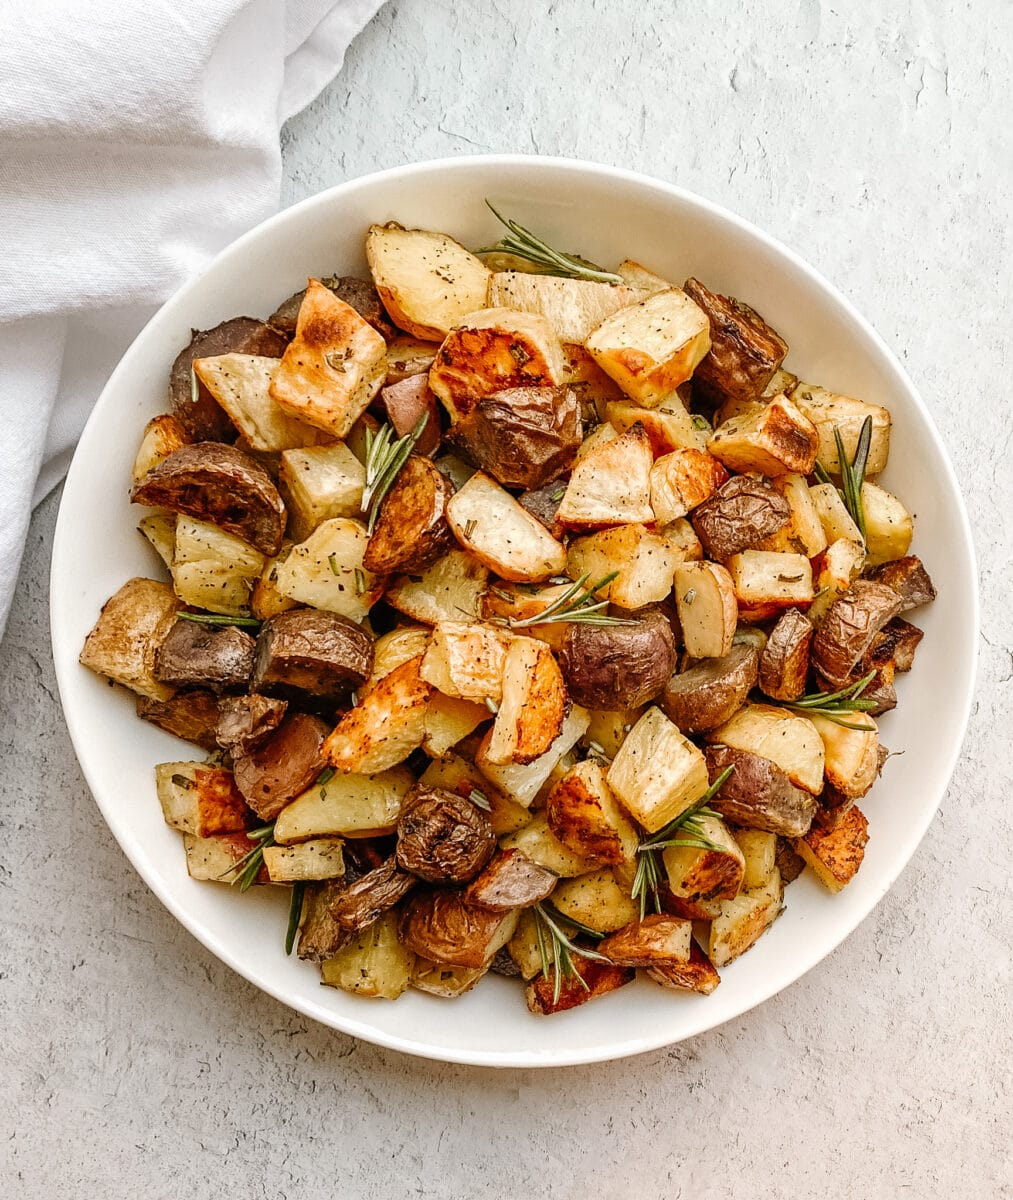 aerial shot of potatoes in a bowl with a white napkin on the outside